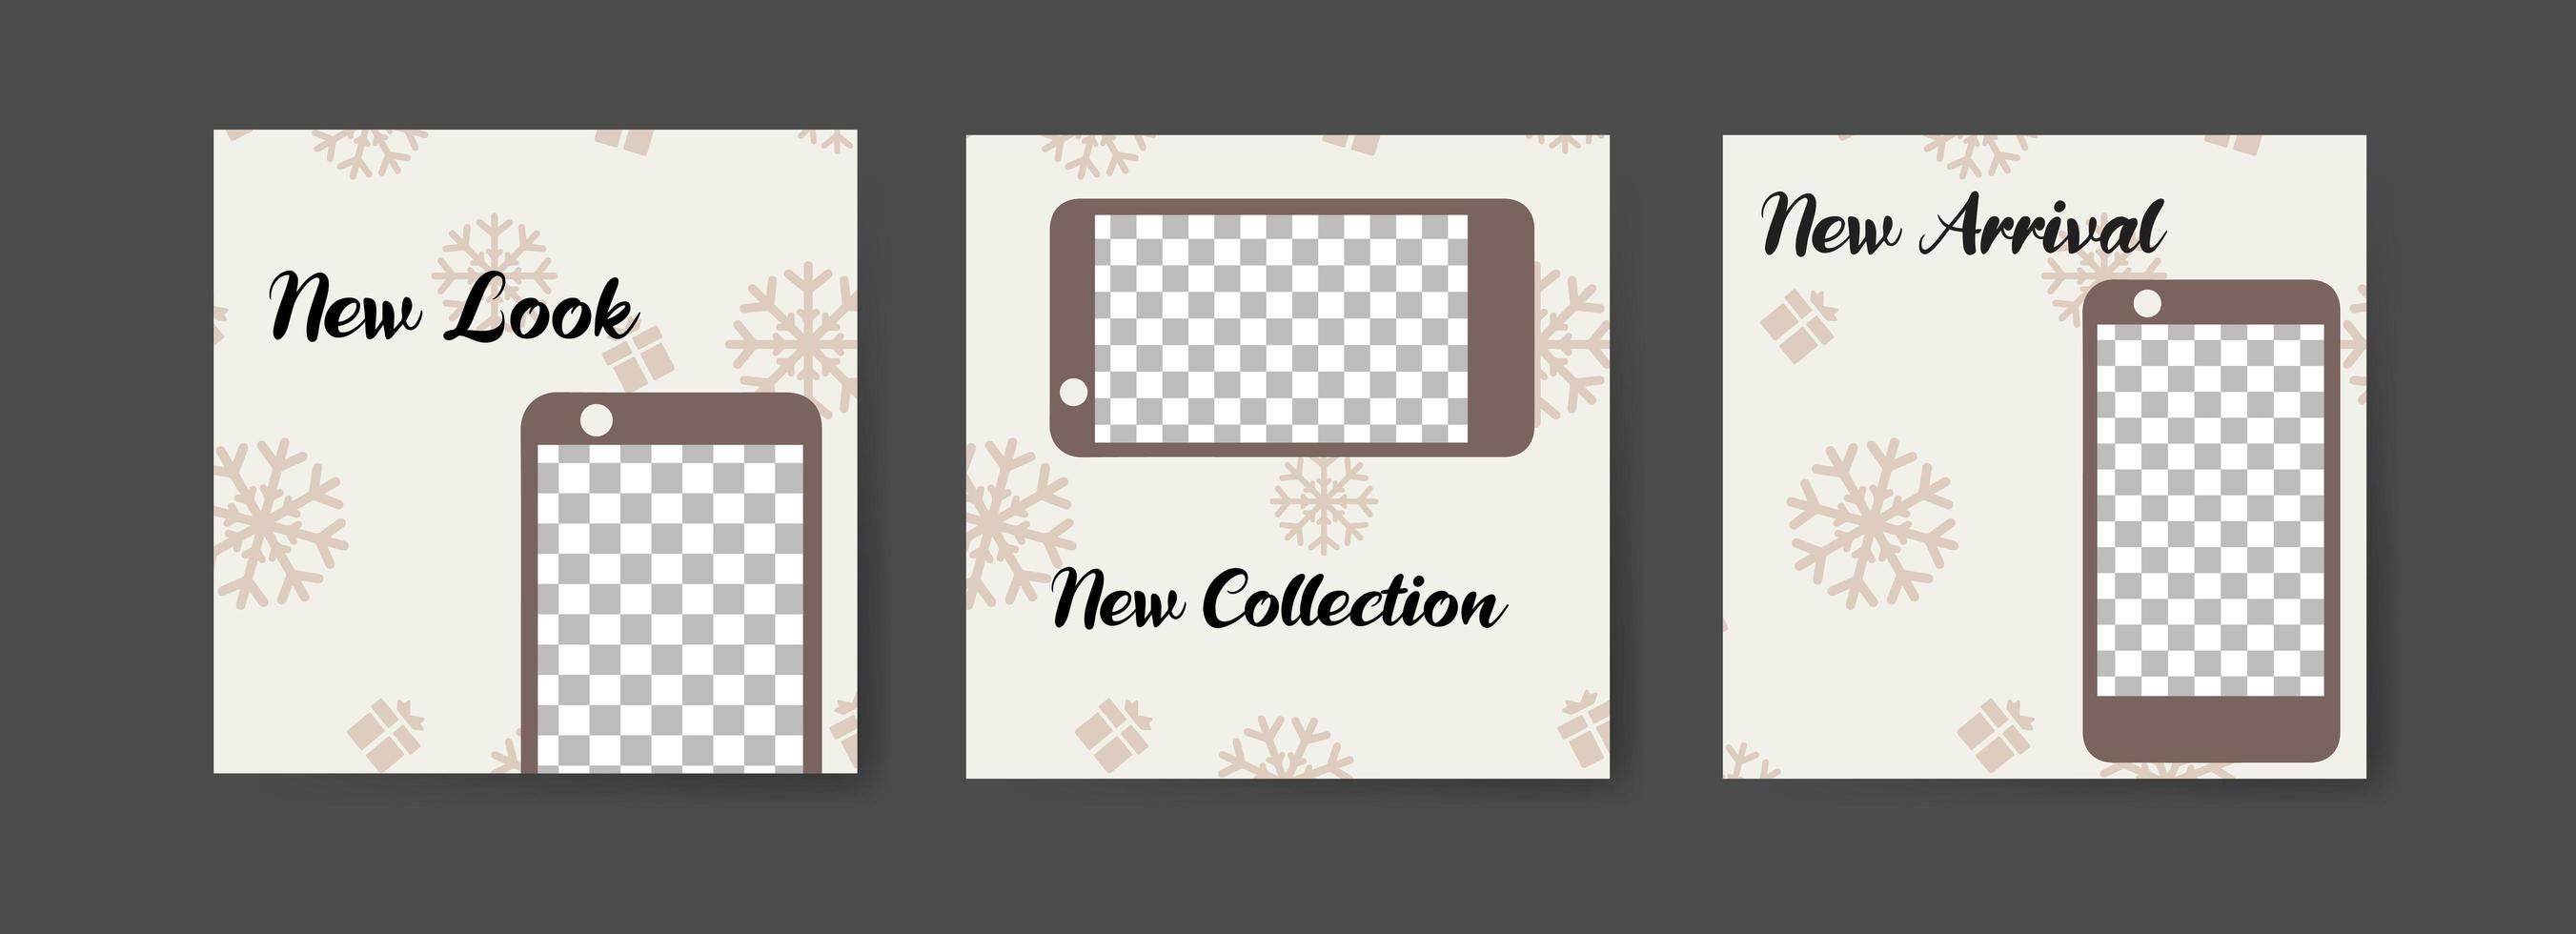 Social media post templates with winter smartphone theme vector